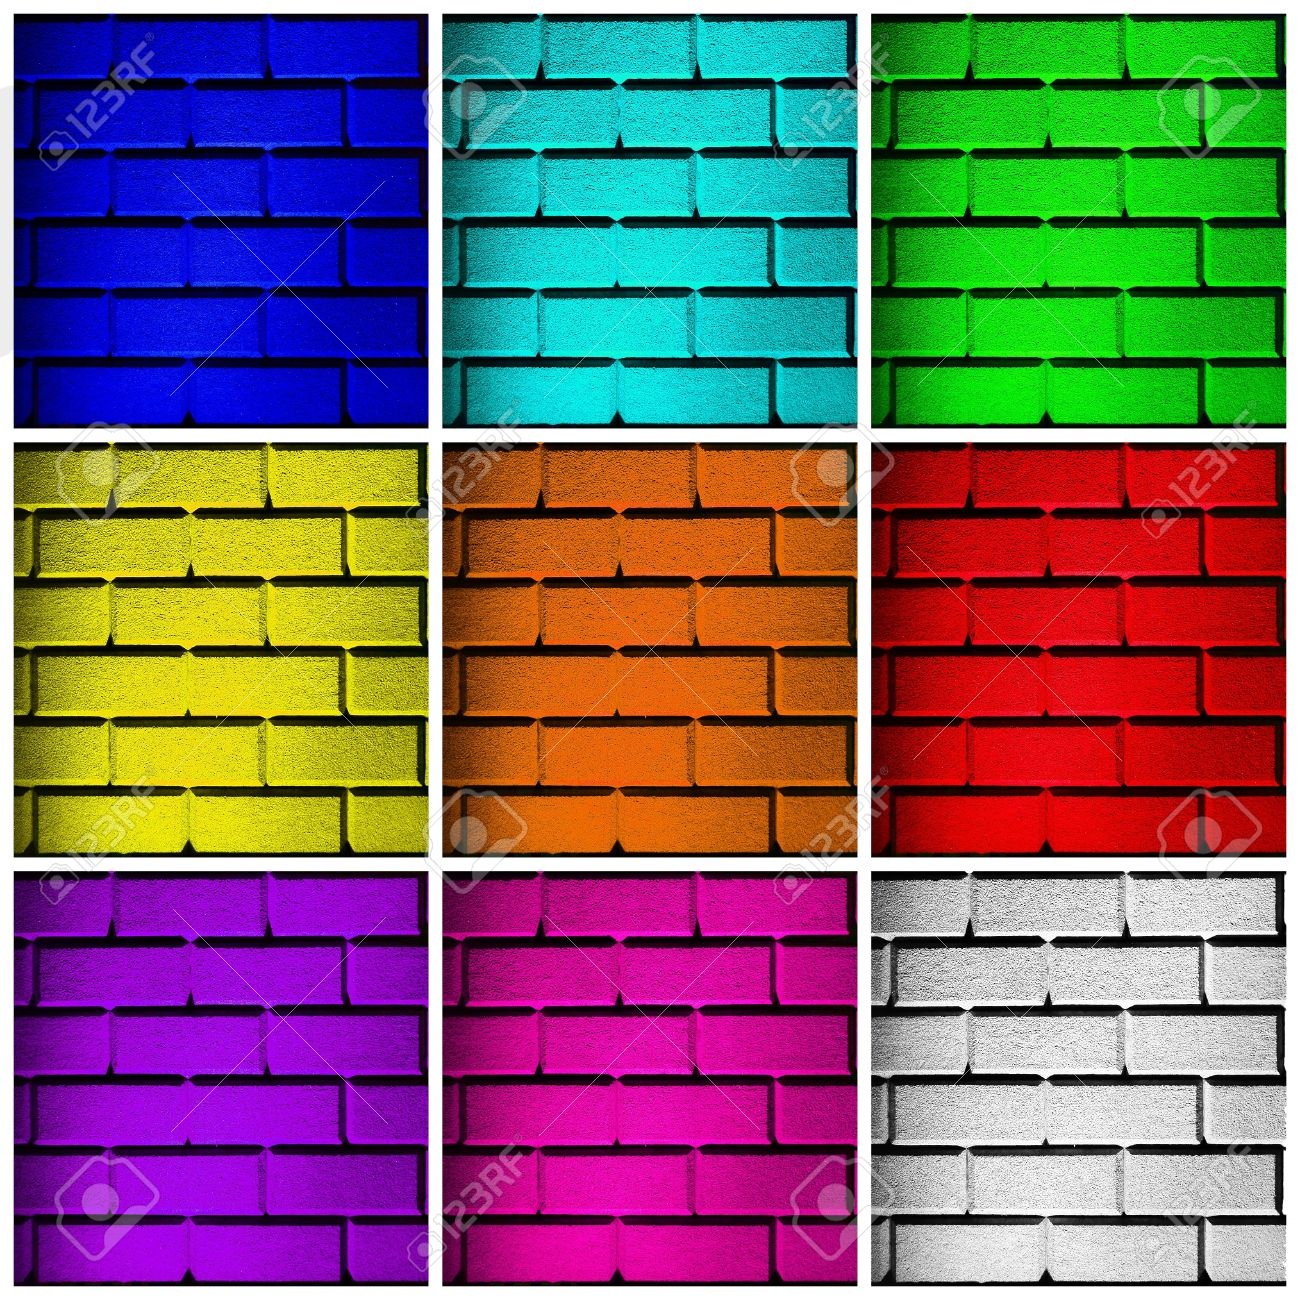 stock photo wall collage with 9 colored walls in different sizes and in all colors of the rainbow in a square frame